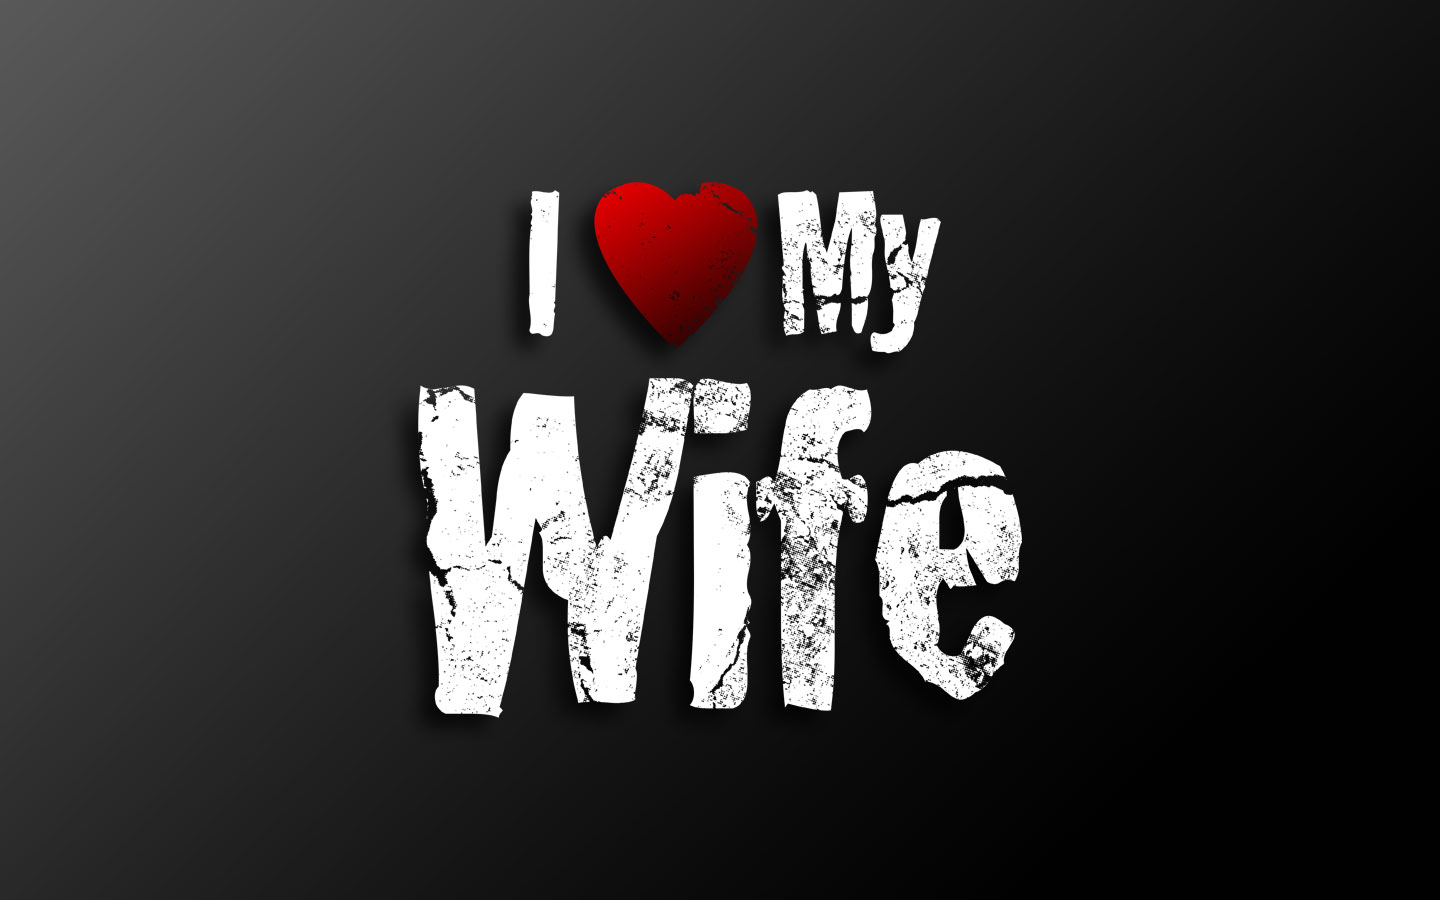 Love Wallpaper For Husband And Wife : I Love My Wife Wallpaper - christian Wallpapers and Backgrounds